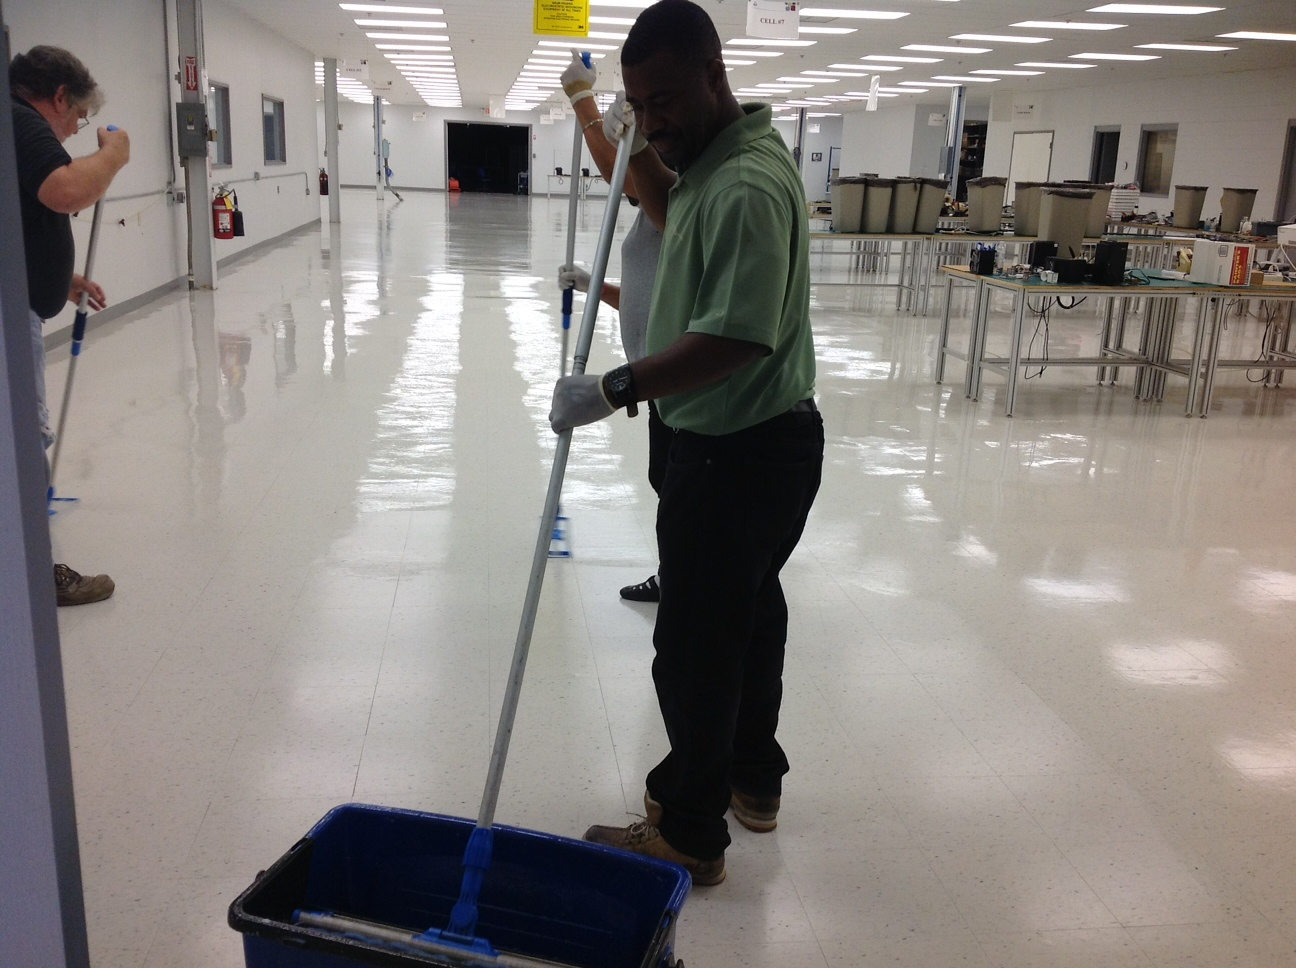 Commerical Floors - Waxing